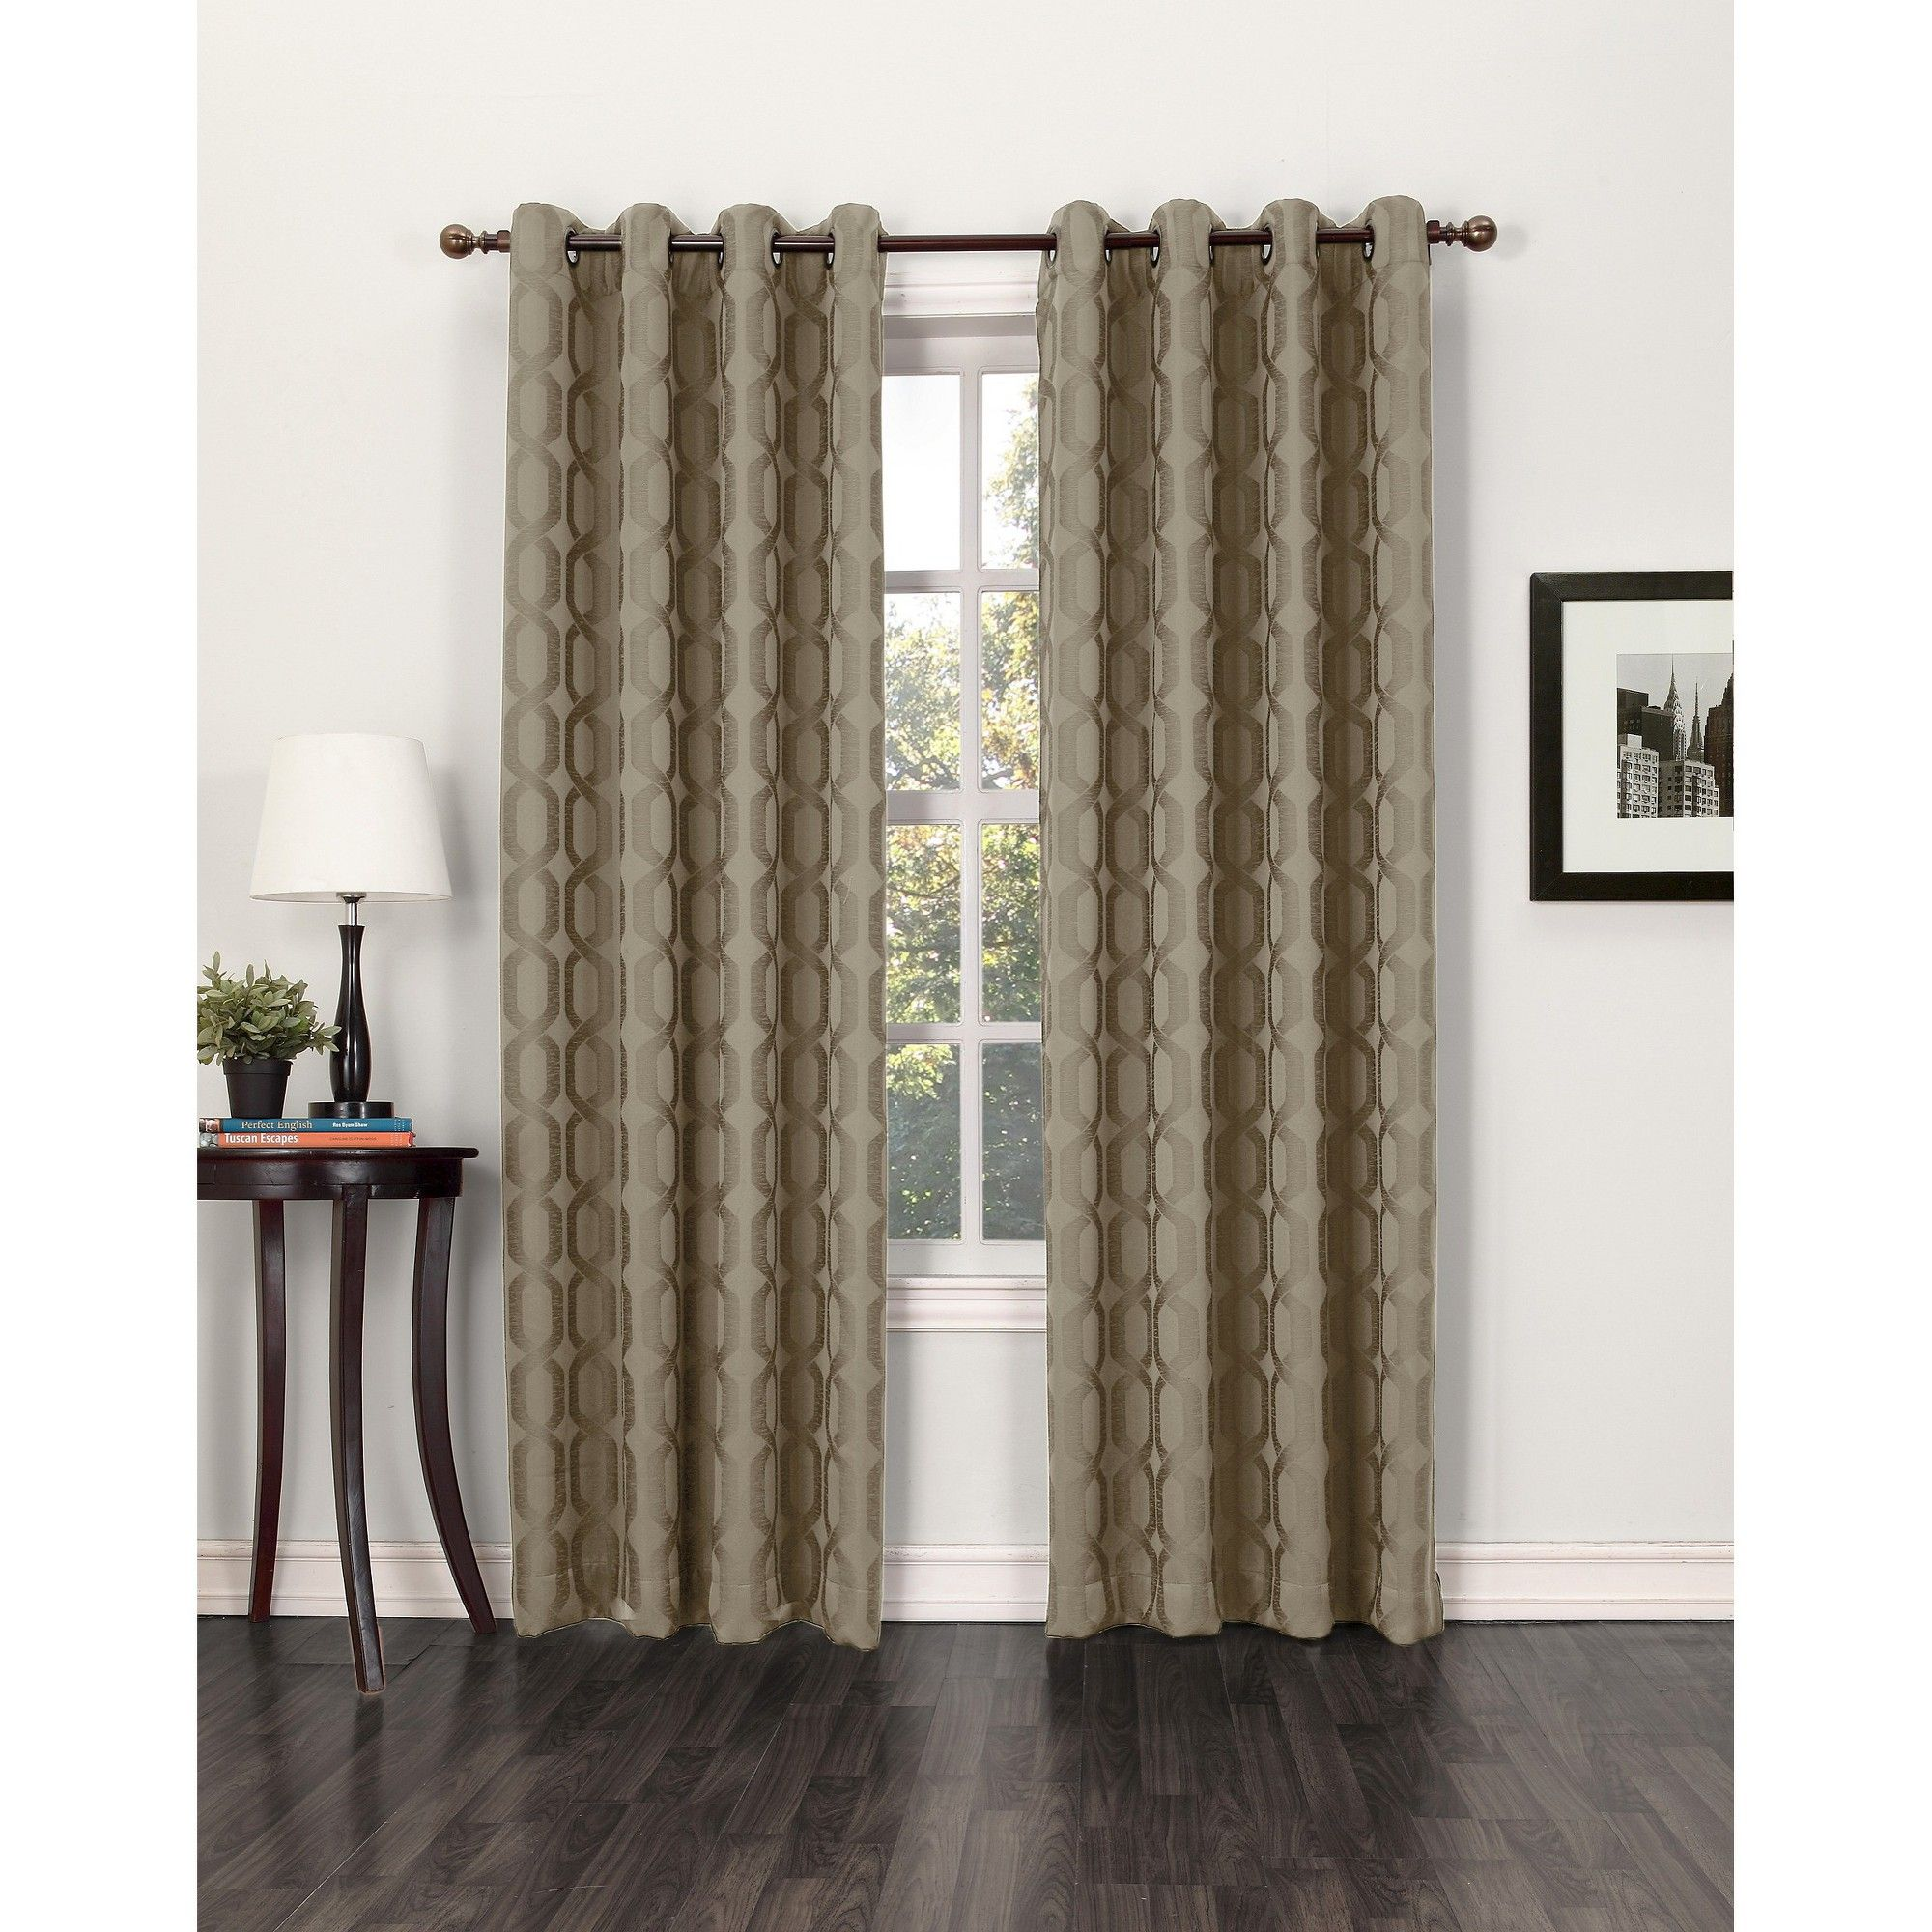 of rods efficient blackout pocket pink full rod curtains curtain size eclipse panel childrens grey cheap energy blockout boys silver kids beautiful kendall